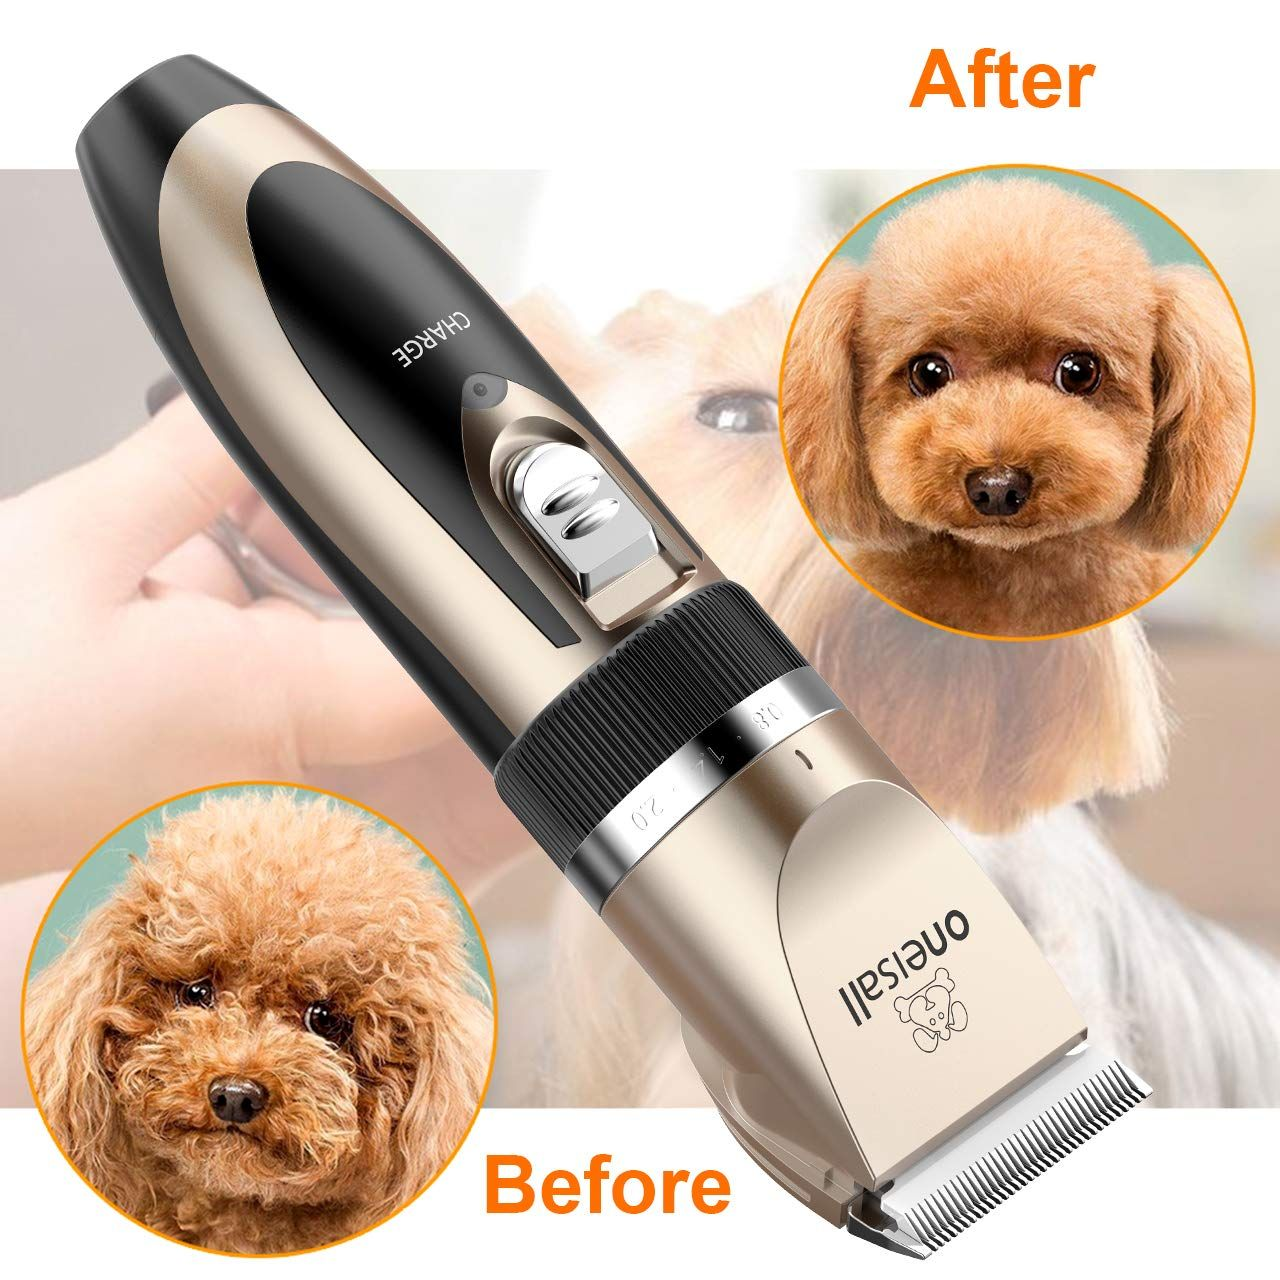 Oneisall Dog Shaver Clippers Low Noise Rechargeable Cordless Electric Quiet Hair Clippers Set For Dogs Cats Pets N Dog Clippers Dog Grooming Clippers Pet Hair